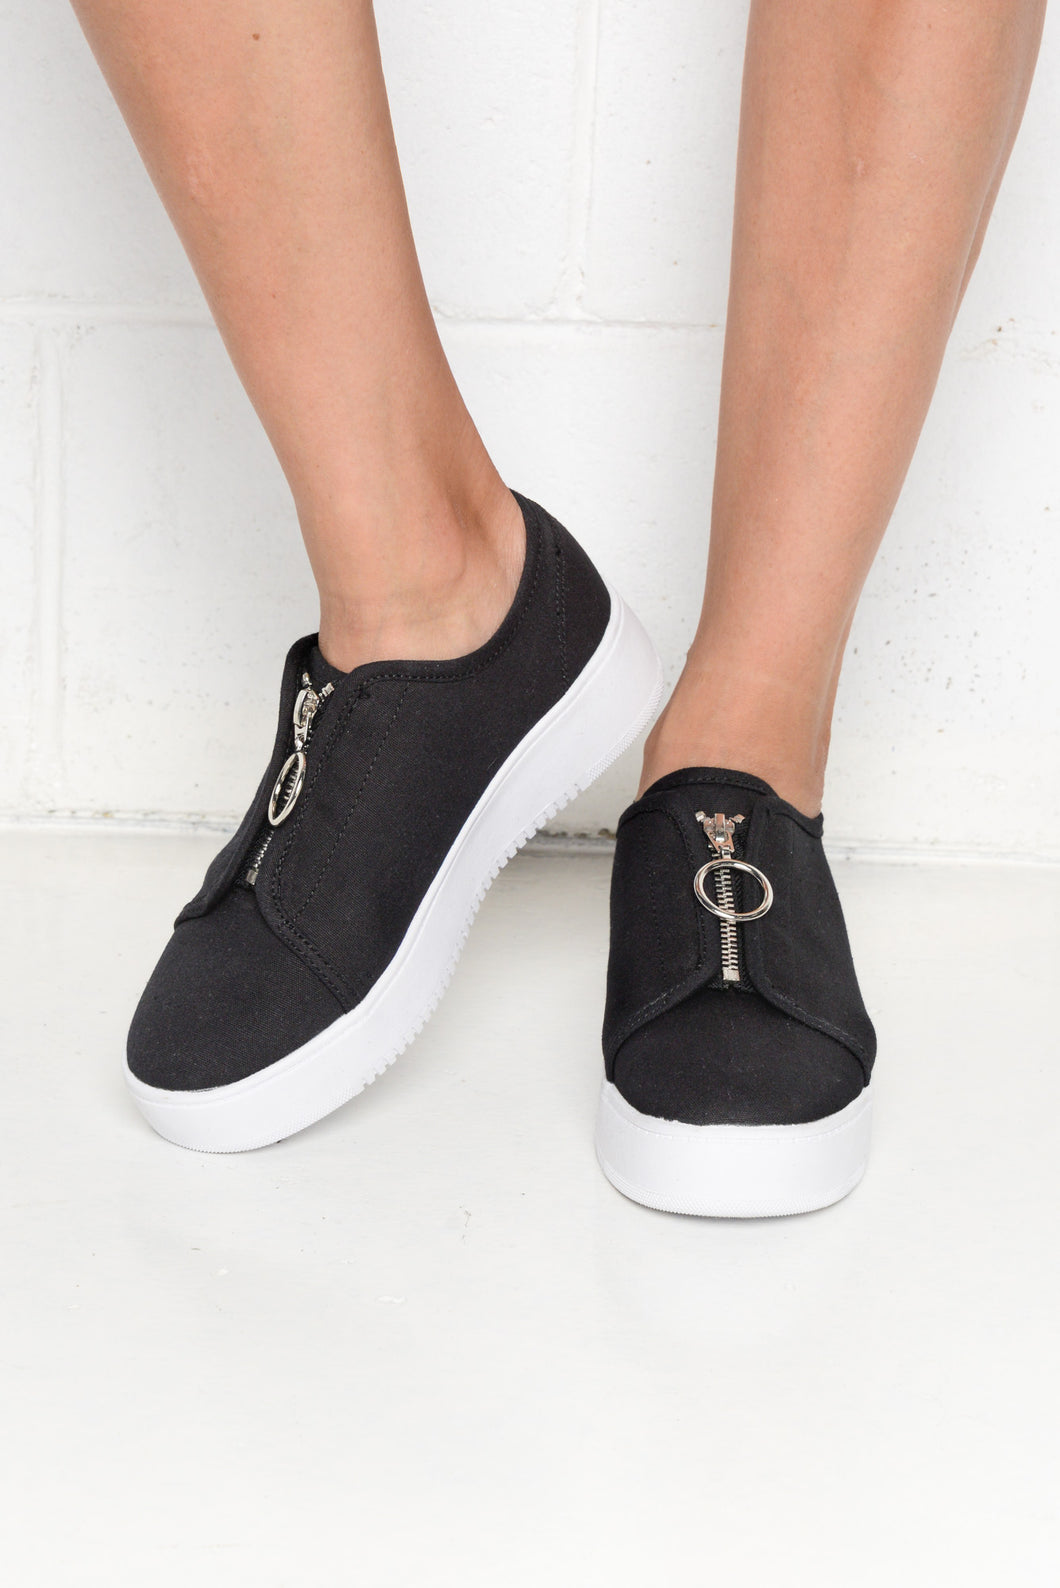 Cruise Black Zip Sneaker - Blue Bungalow